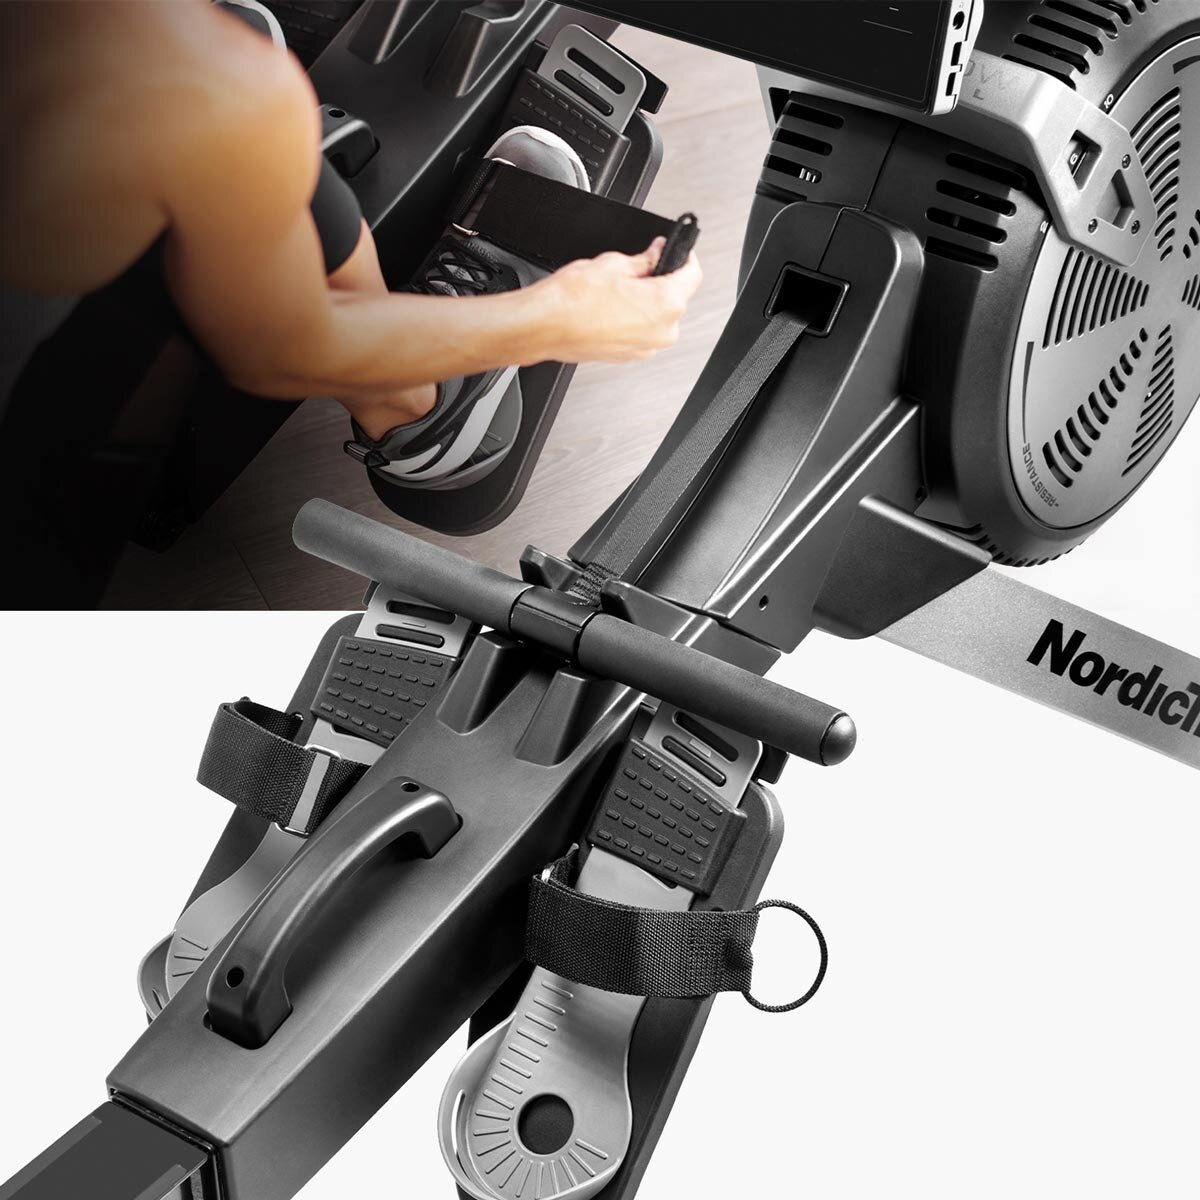 Users report that they like the easy to strap on foot-pedals on the  RW900 rower  and the resistance is challenging enough for even a serious rower